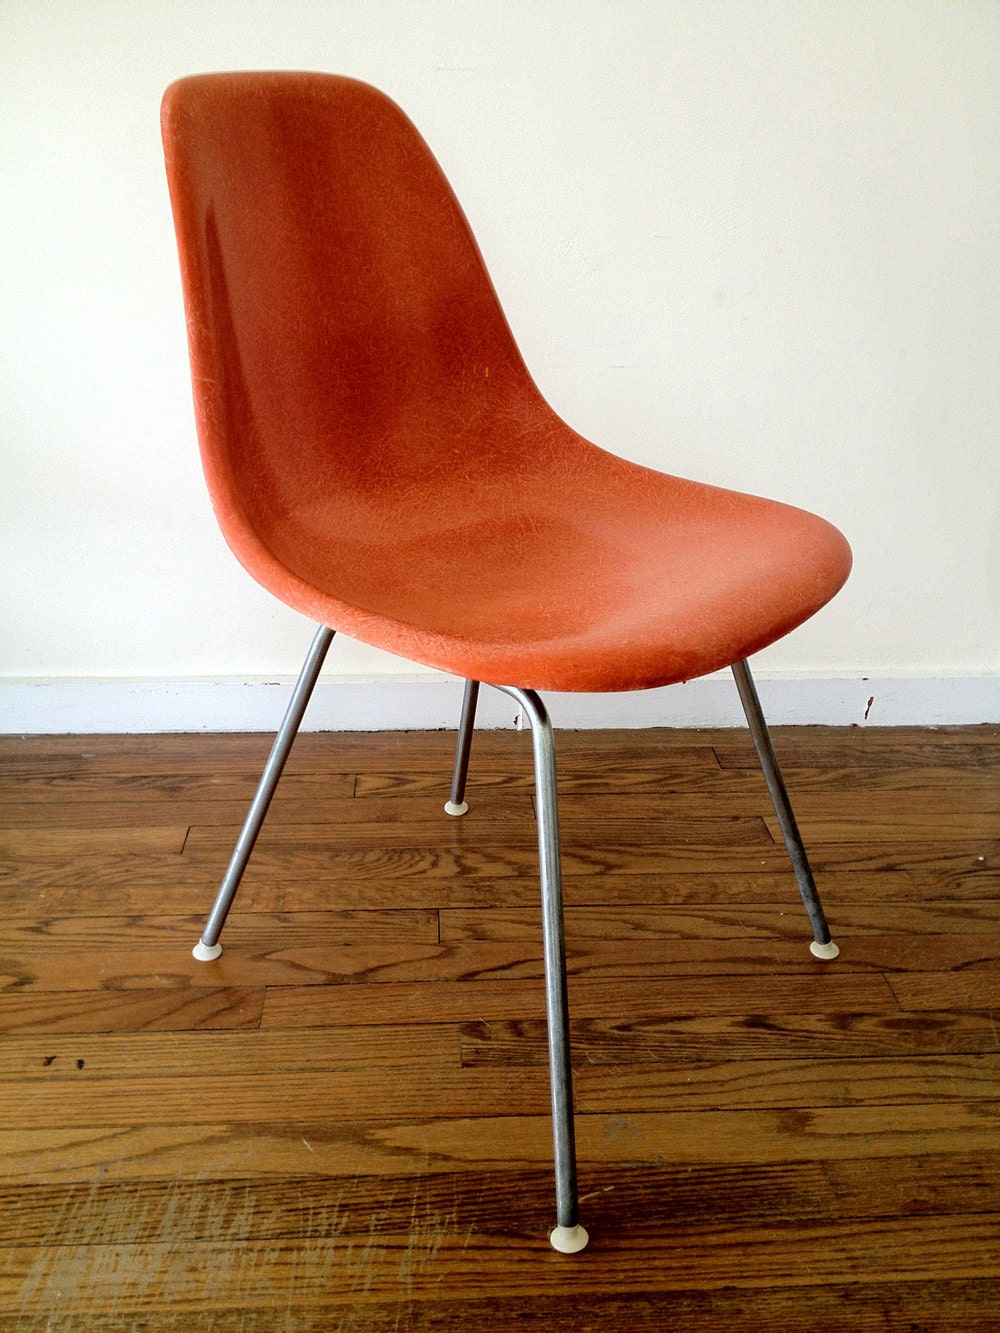 Herman miller eames shell chair with h base - Herman miller chair eames ...